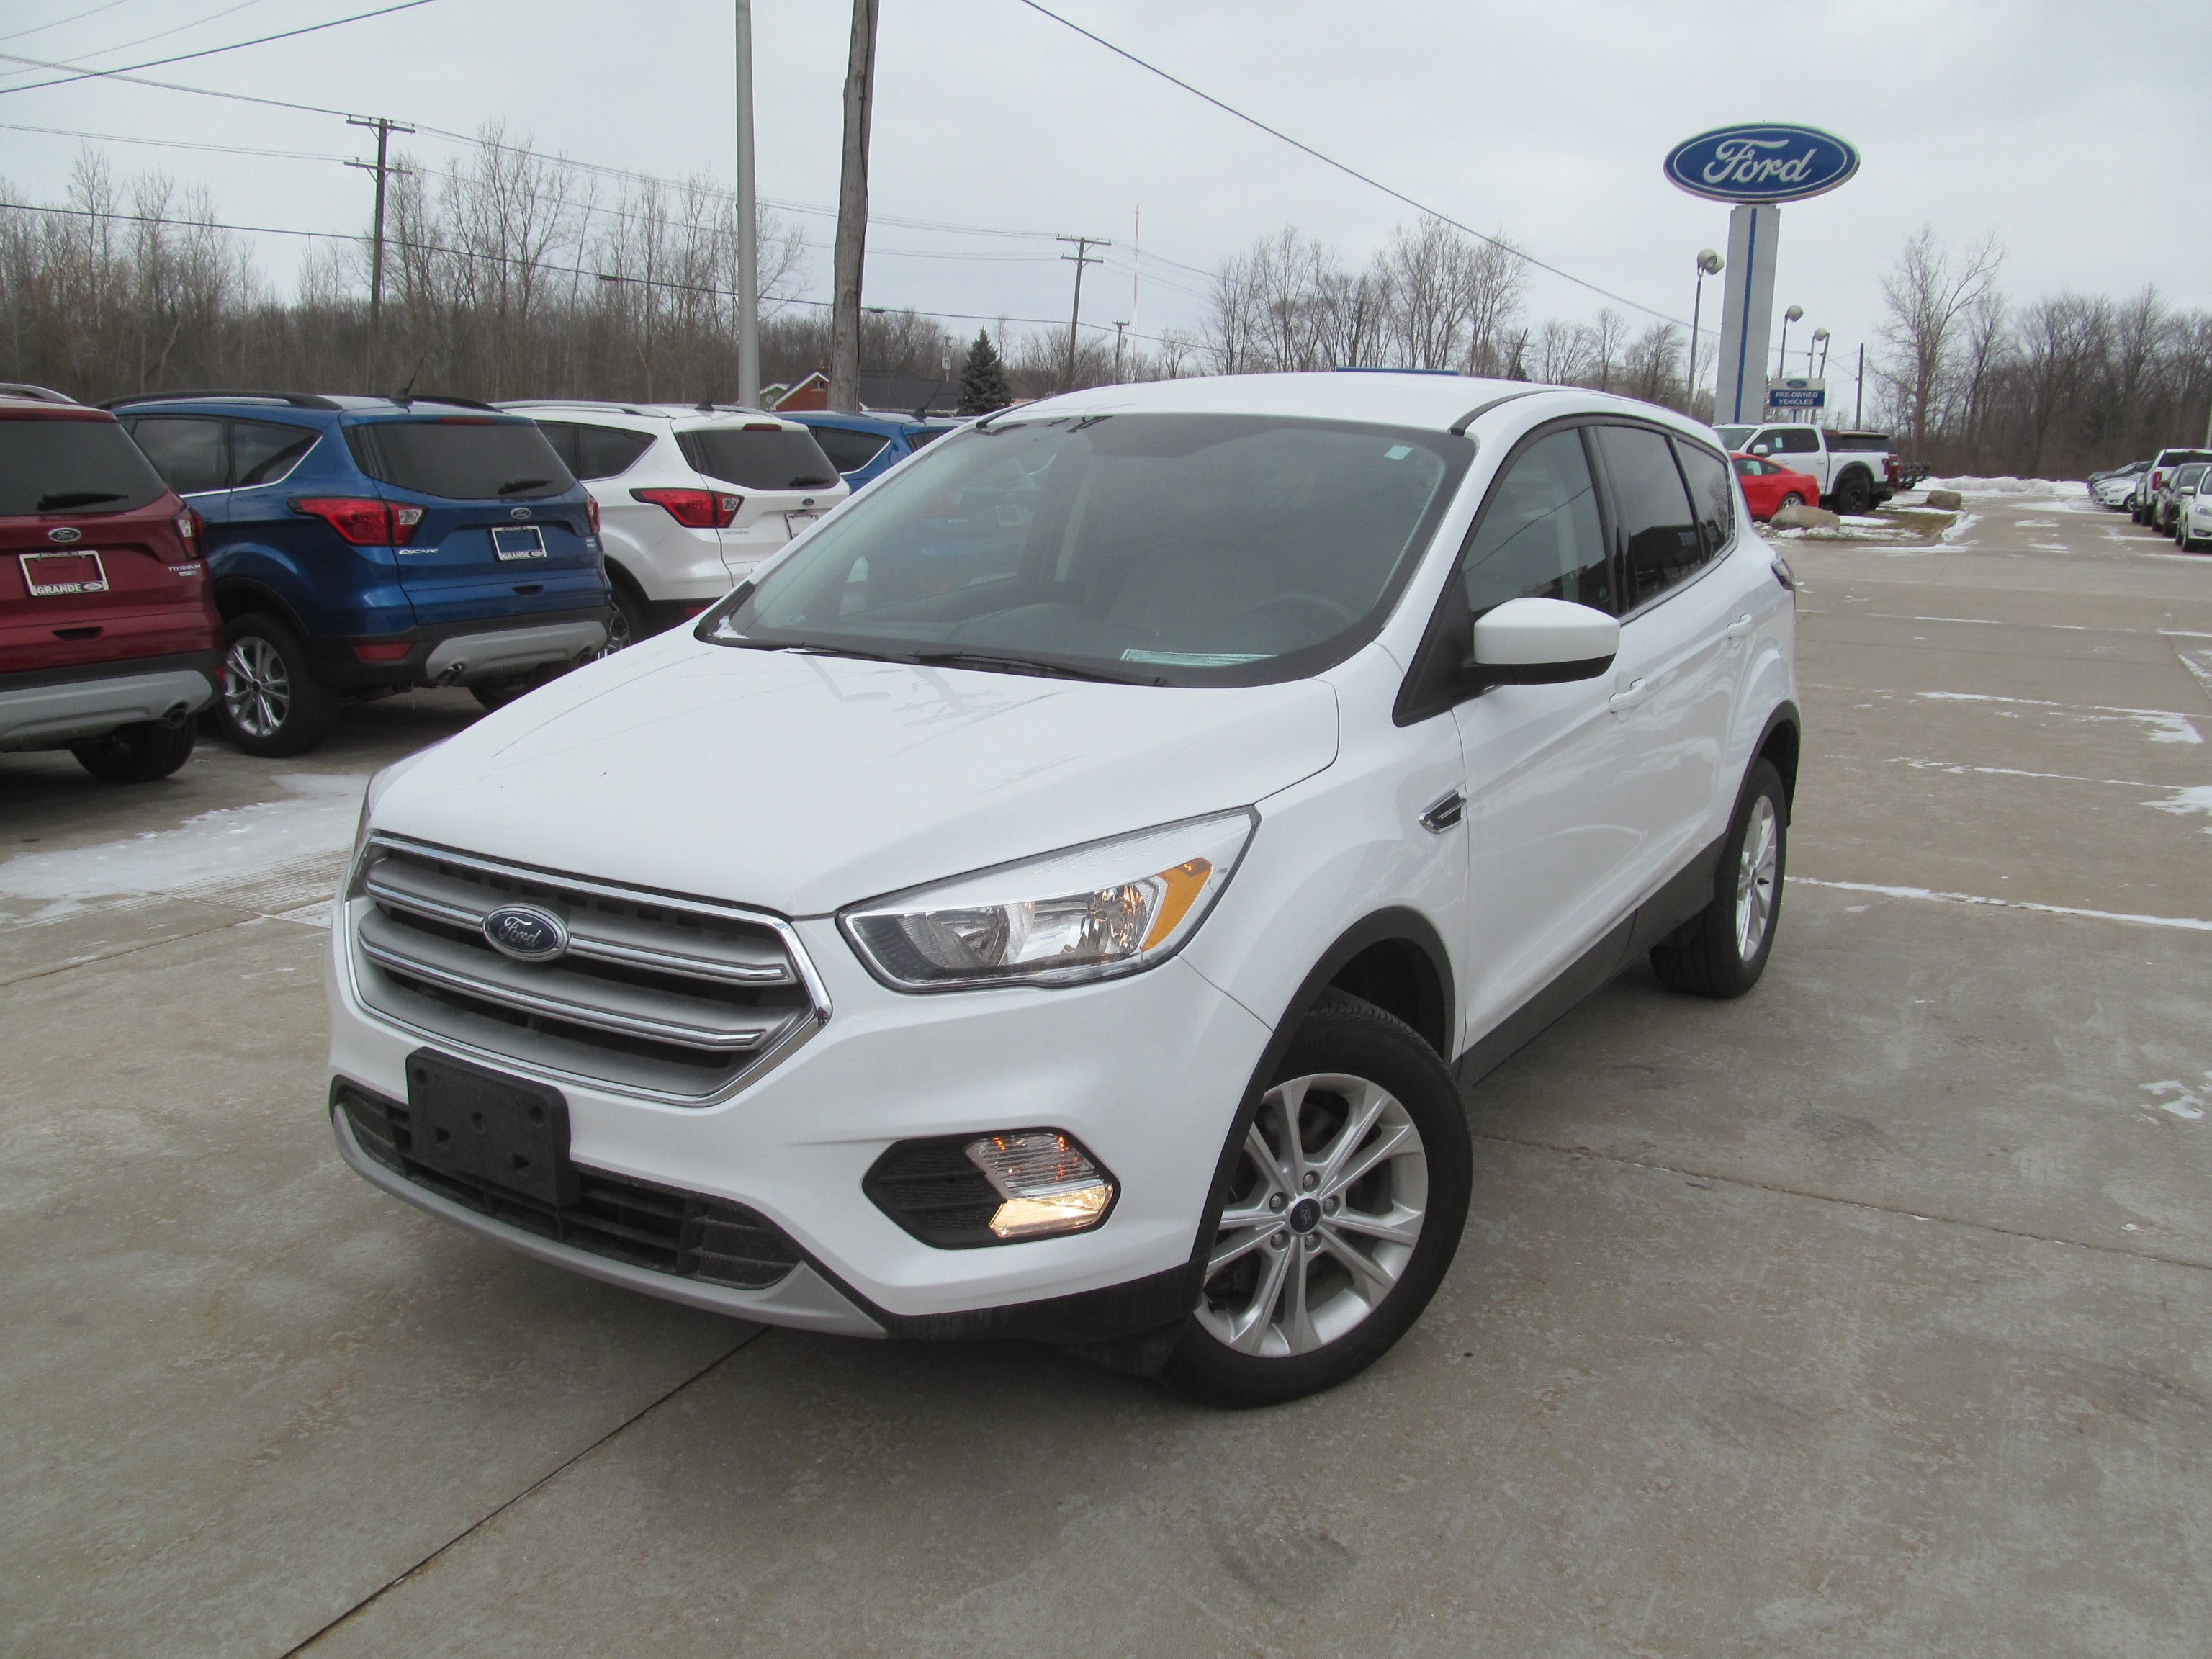 2017 Ford Escape SE Certified 7 Year/100K Mile PowerTrain warranty! SUV